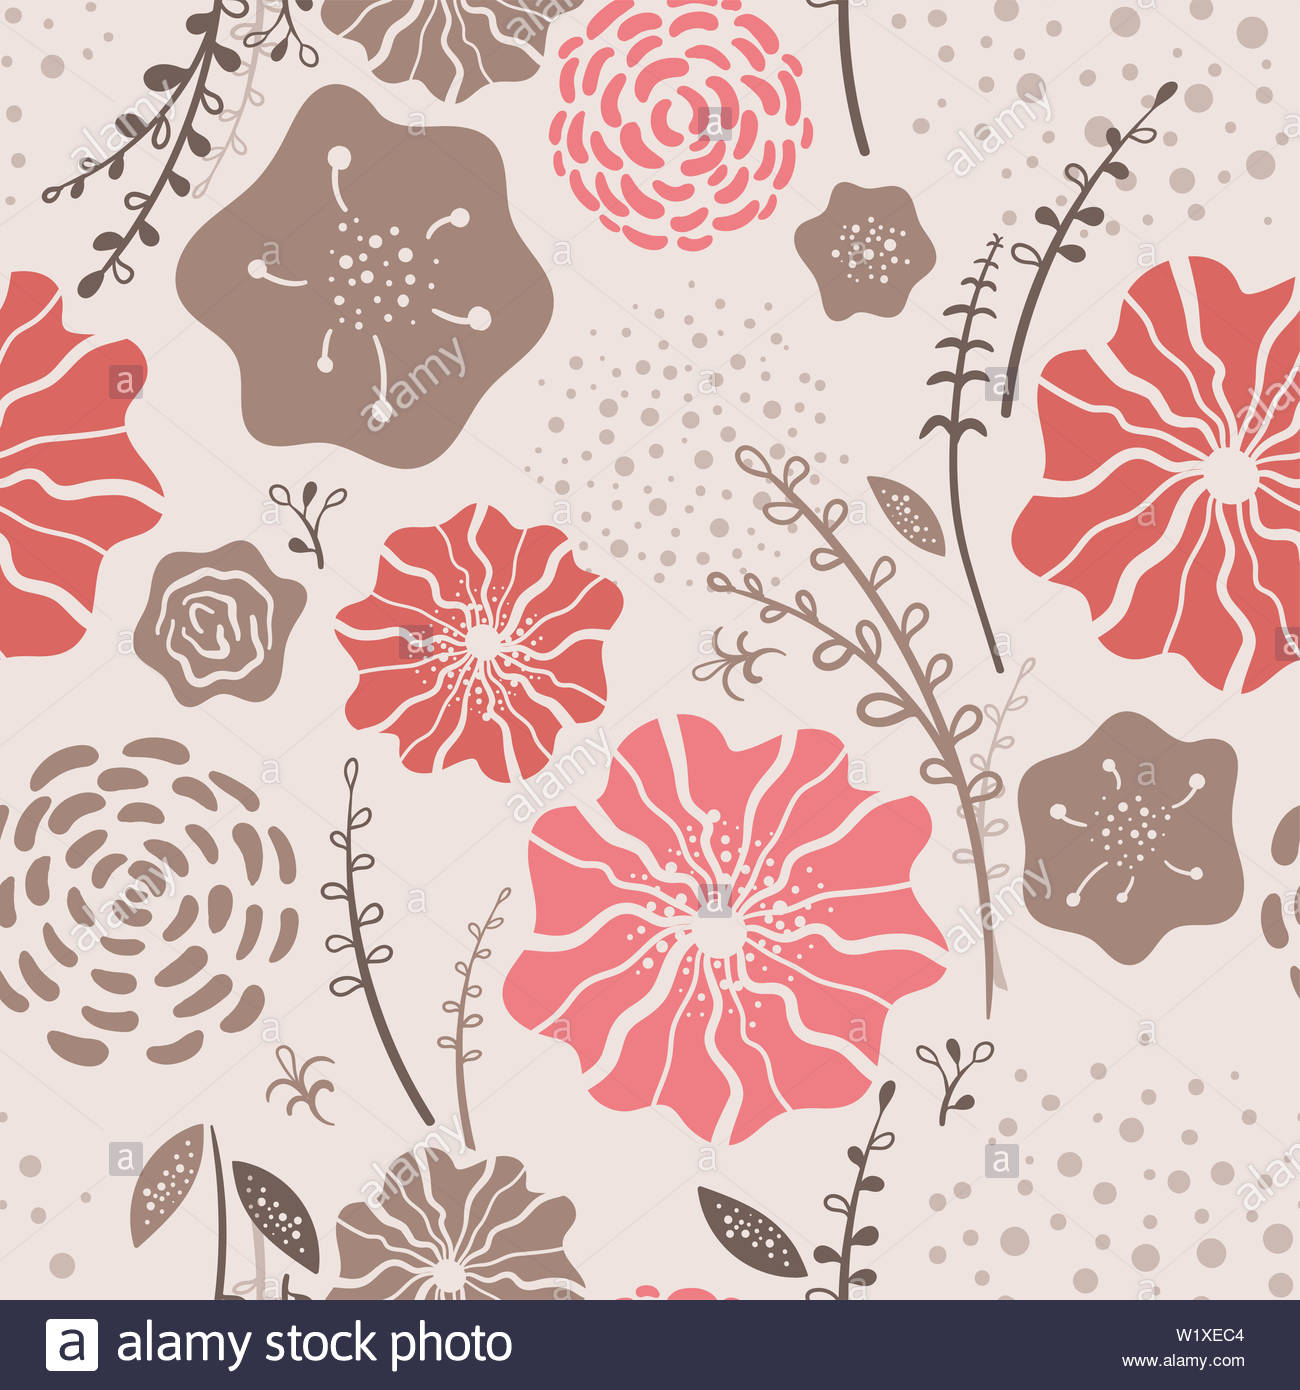 52d43c87d2a50 Beautiful Floral seamless pattern with trend color coral - repeat ...